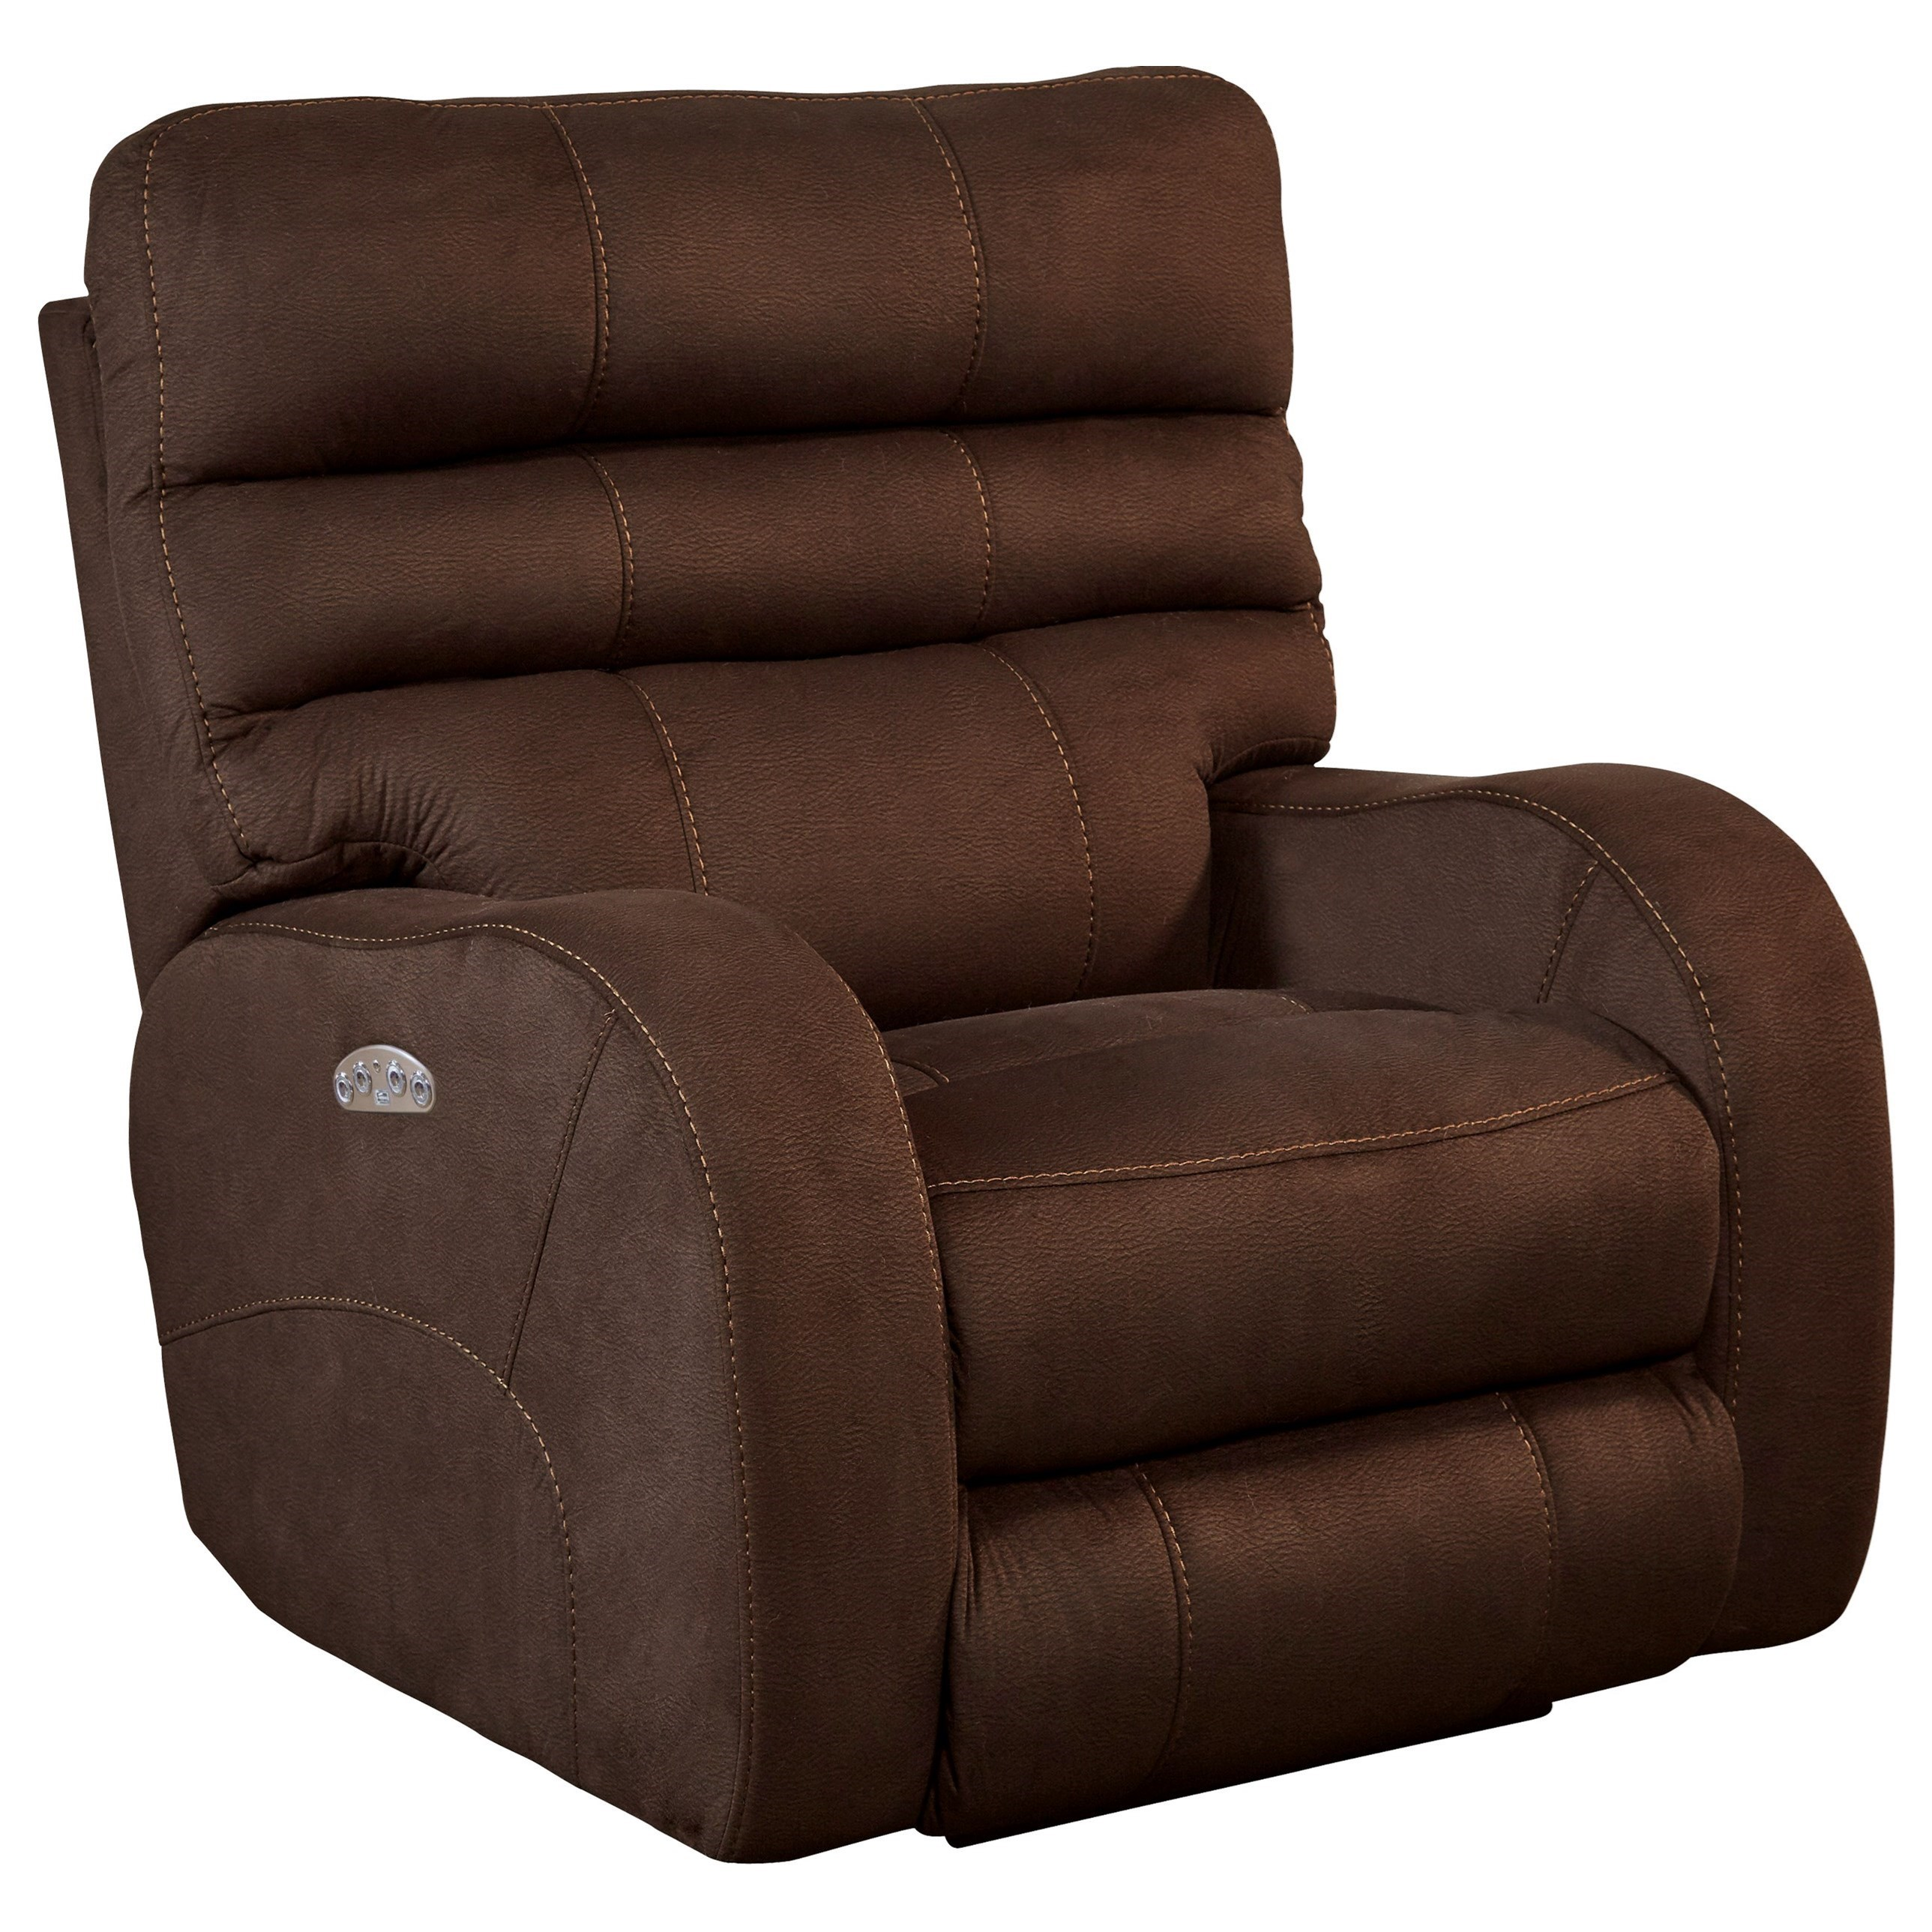 Catnapper Kelsey Layflat Power Recliner - Item Number: 61900-7-1528-09